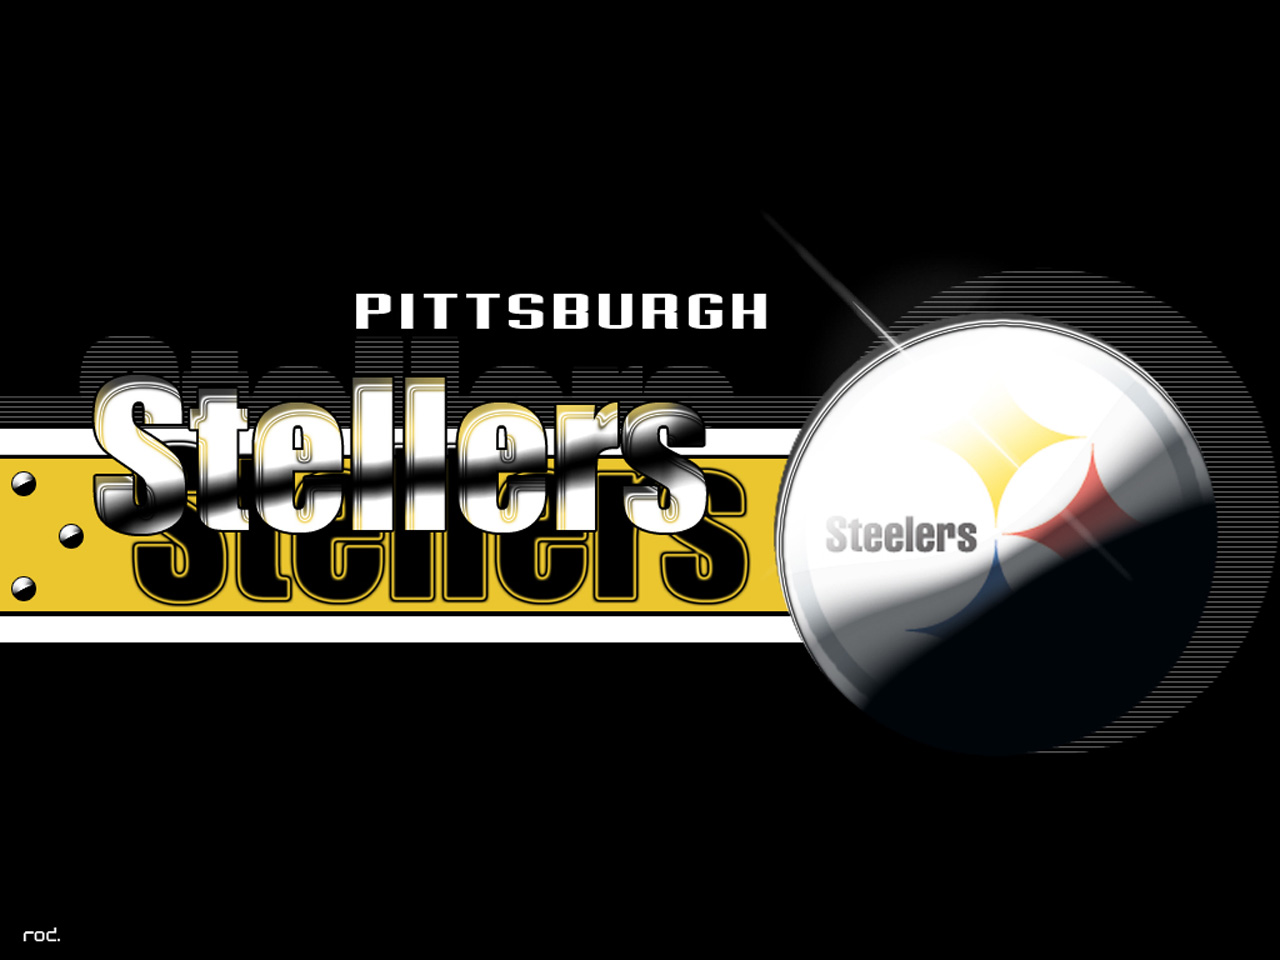 Pittsburgh Steelers wallpaper Pittsburgh Steelers wallpapers 1280x960